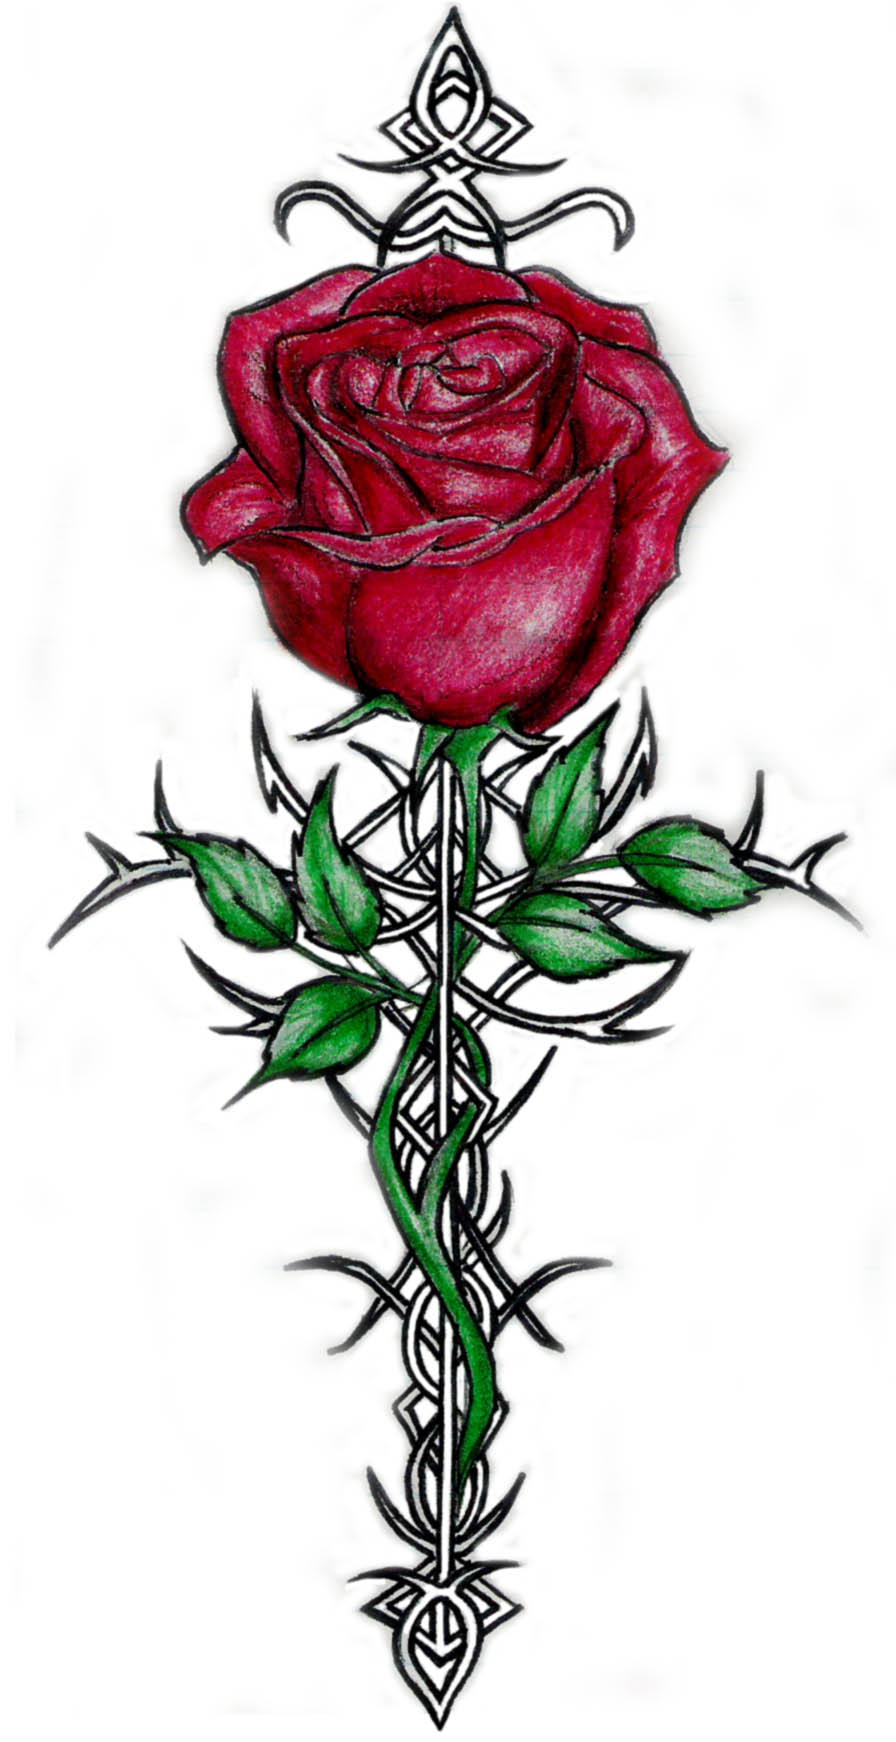 Rose tattoo by hewoooow on deviantart for Tattoos of roses